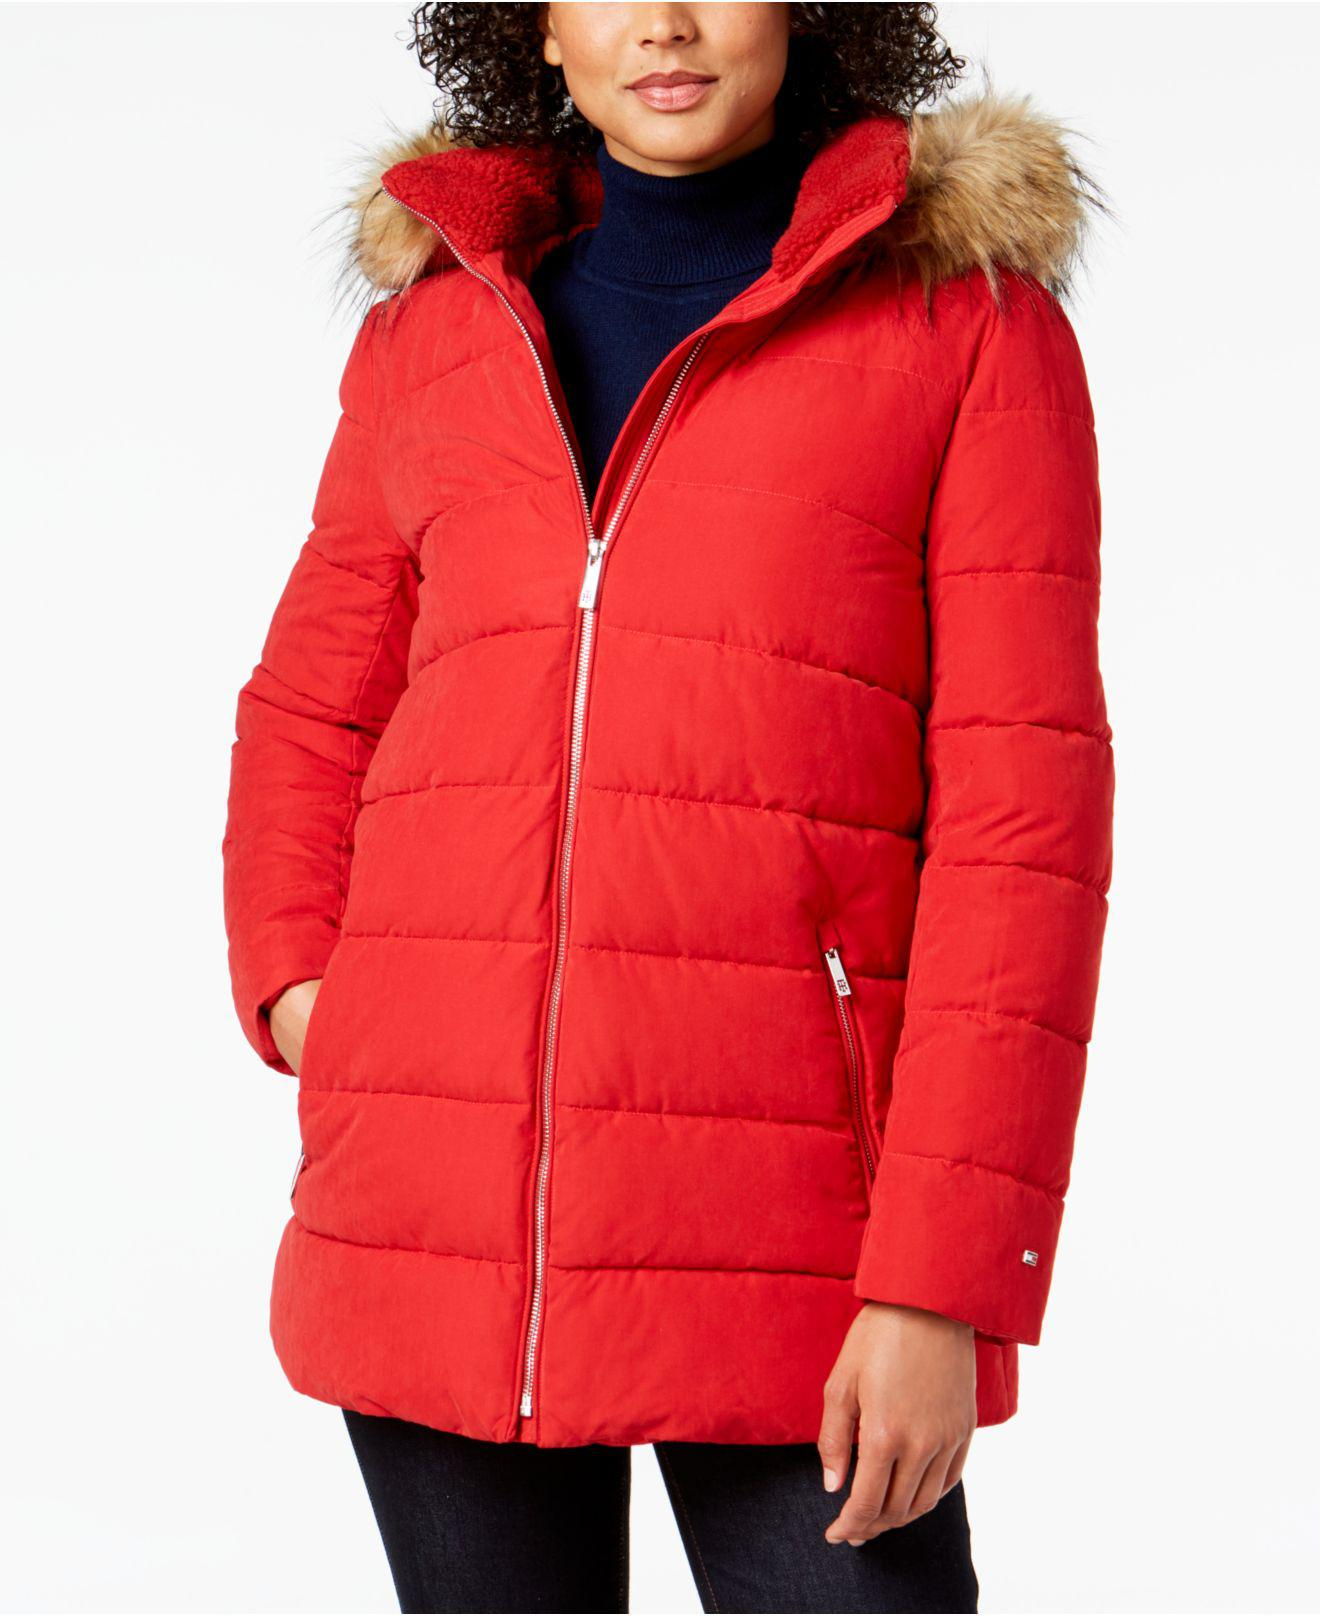 ce443d668fc80 Lyst - Tommy Hilfiger Faux-fur-trim Hooded Puffer Coat in Red